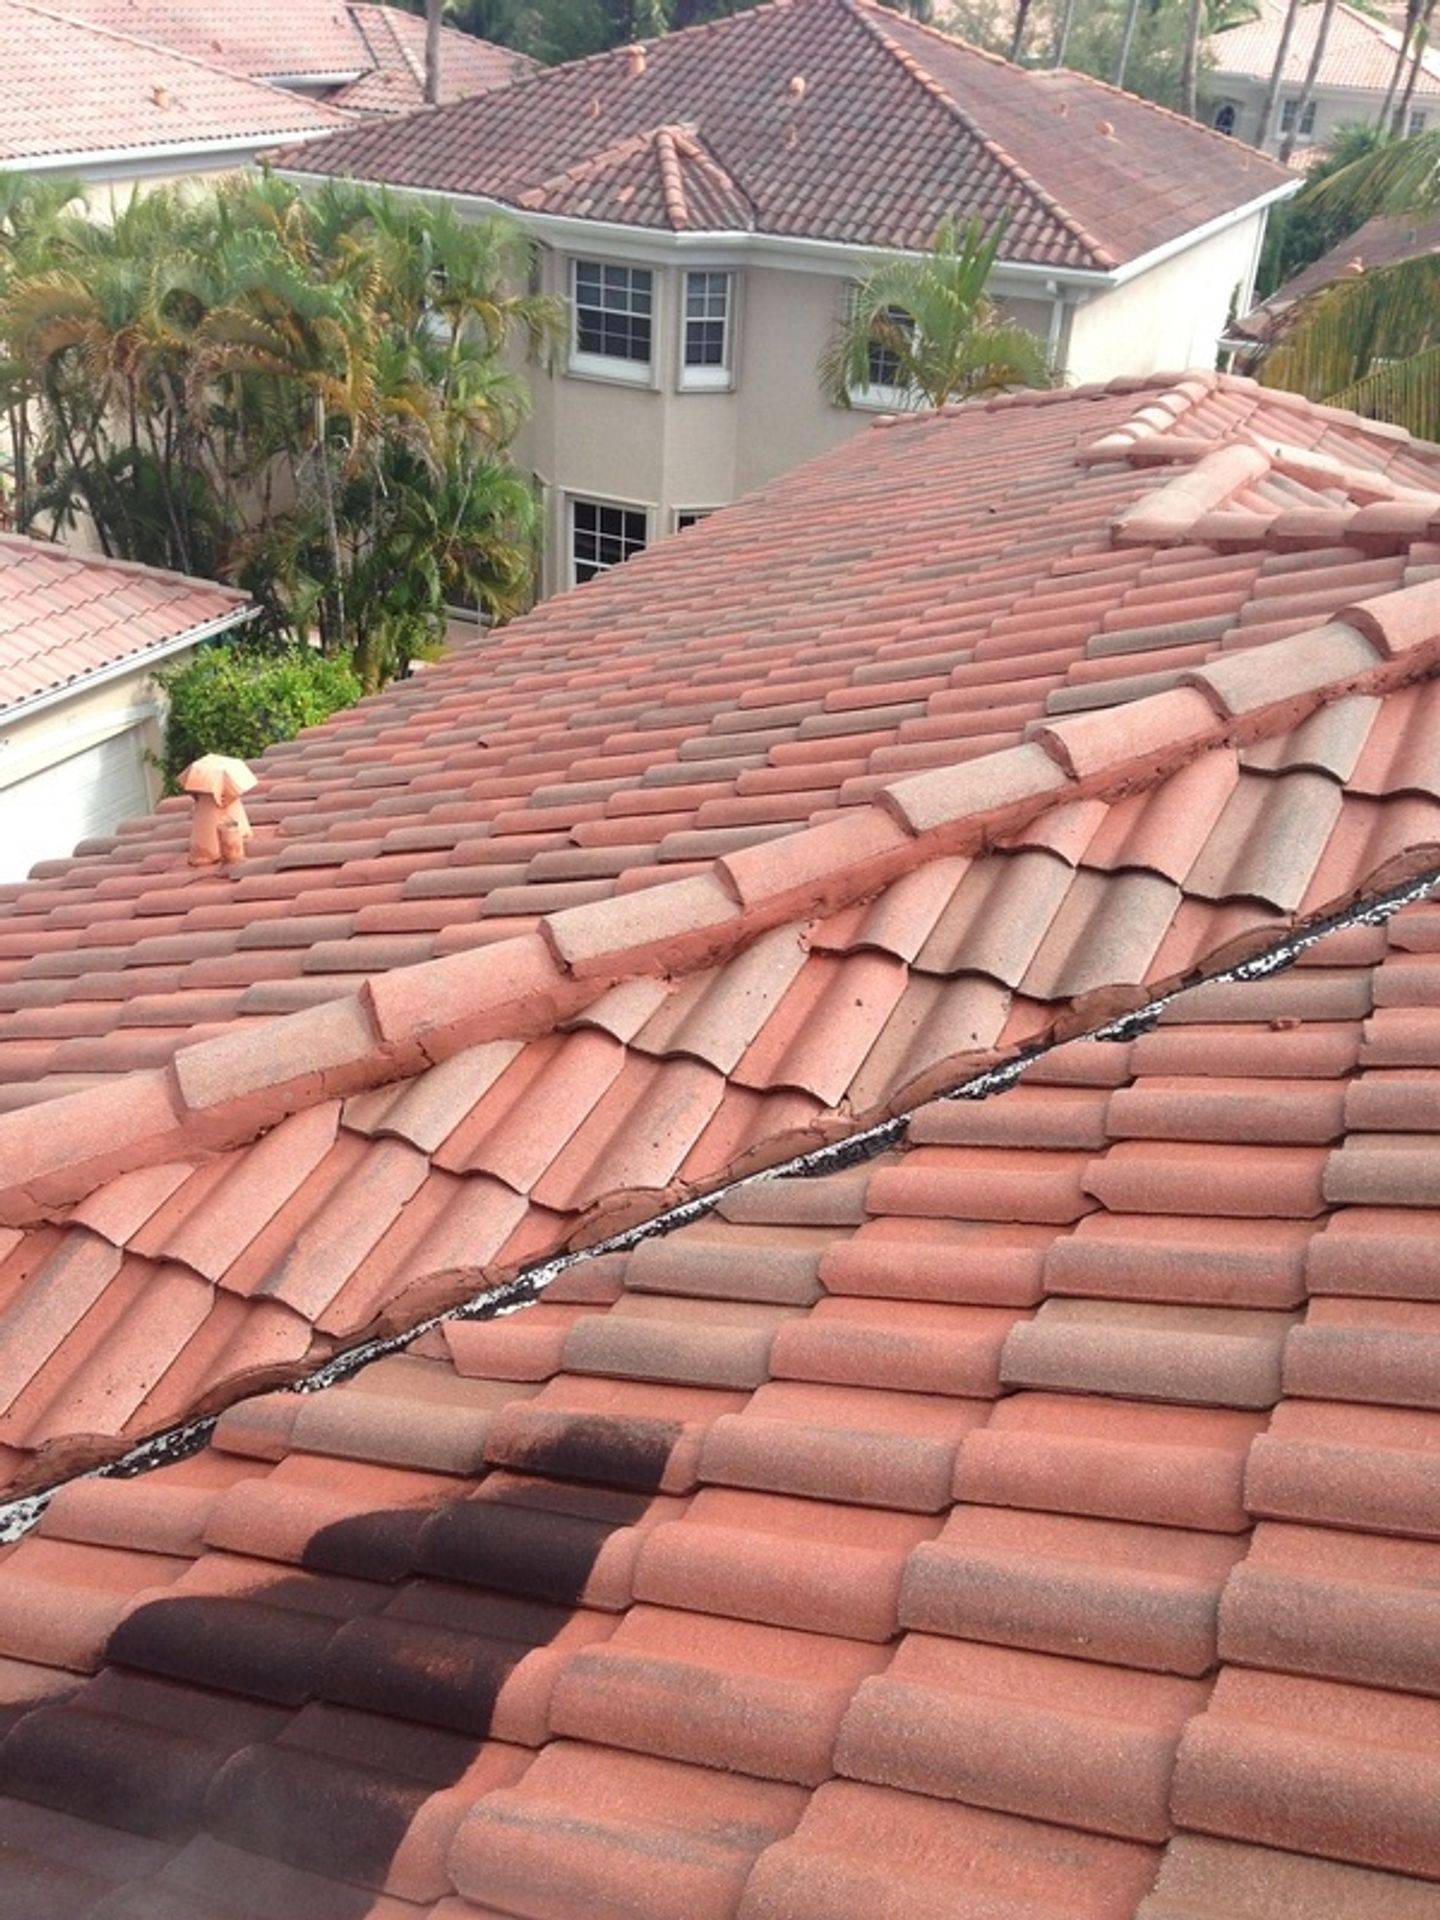 AR&D Inc. Roof Cleaning Services.